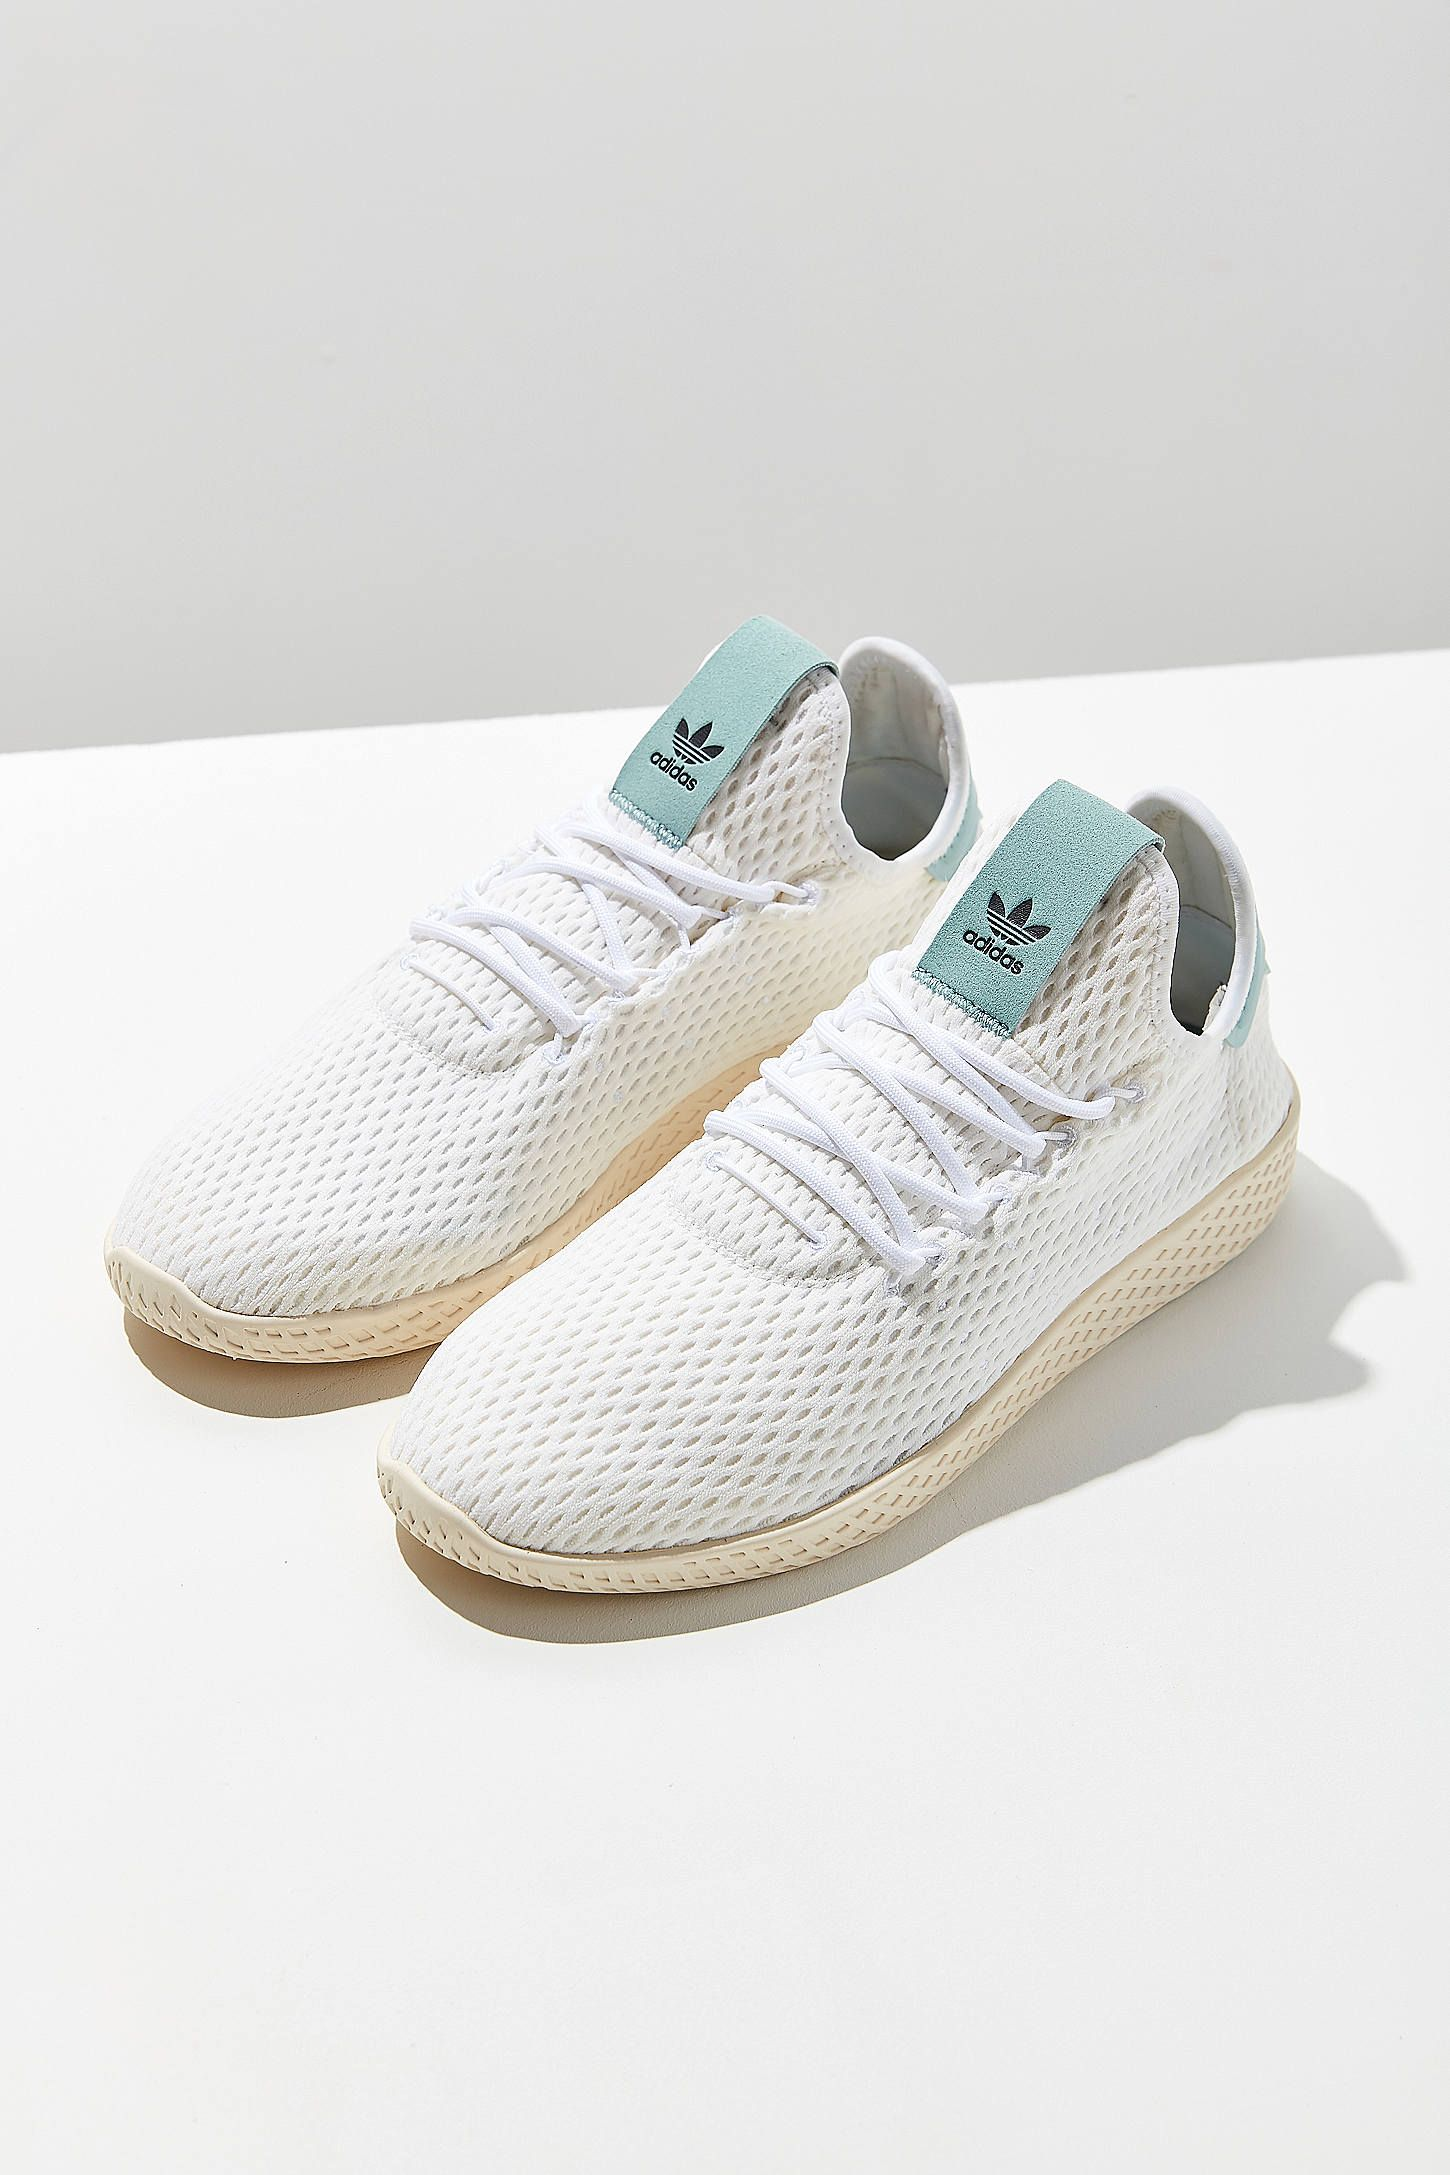 37cd9f74c9755 Shop adidas Originals X Pharrell Williams Tennis Hu Sneaker at Urban  Outfitters today. We carry all the latest styles